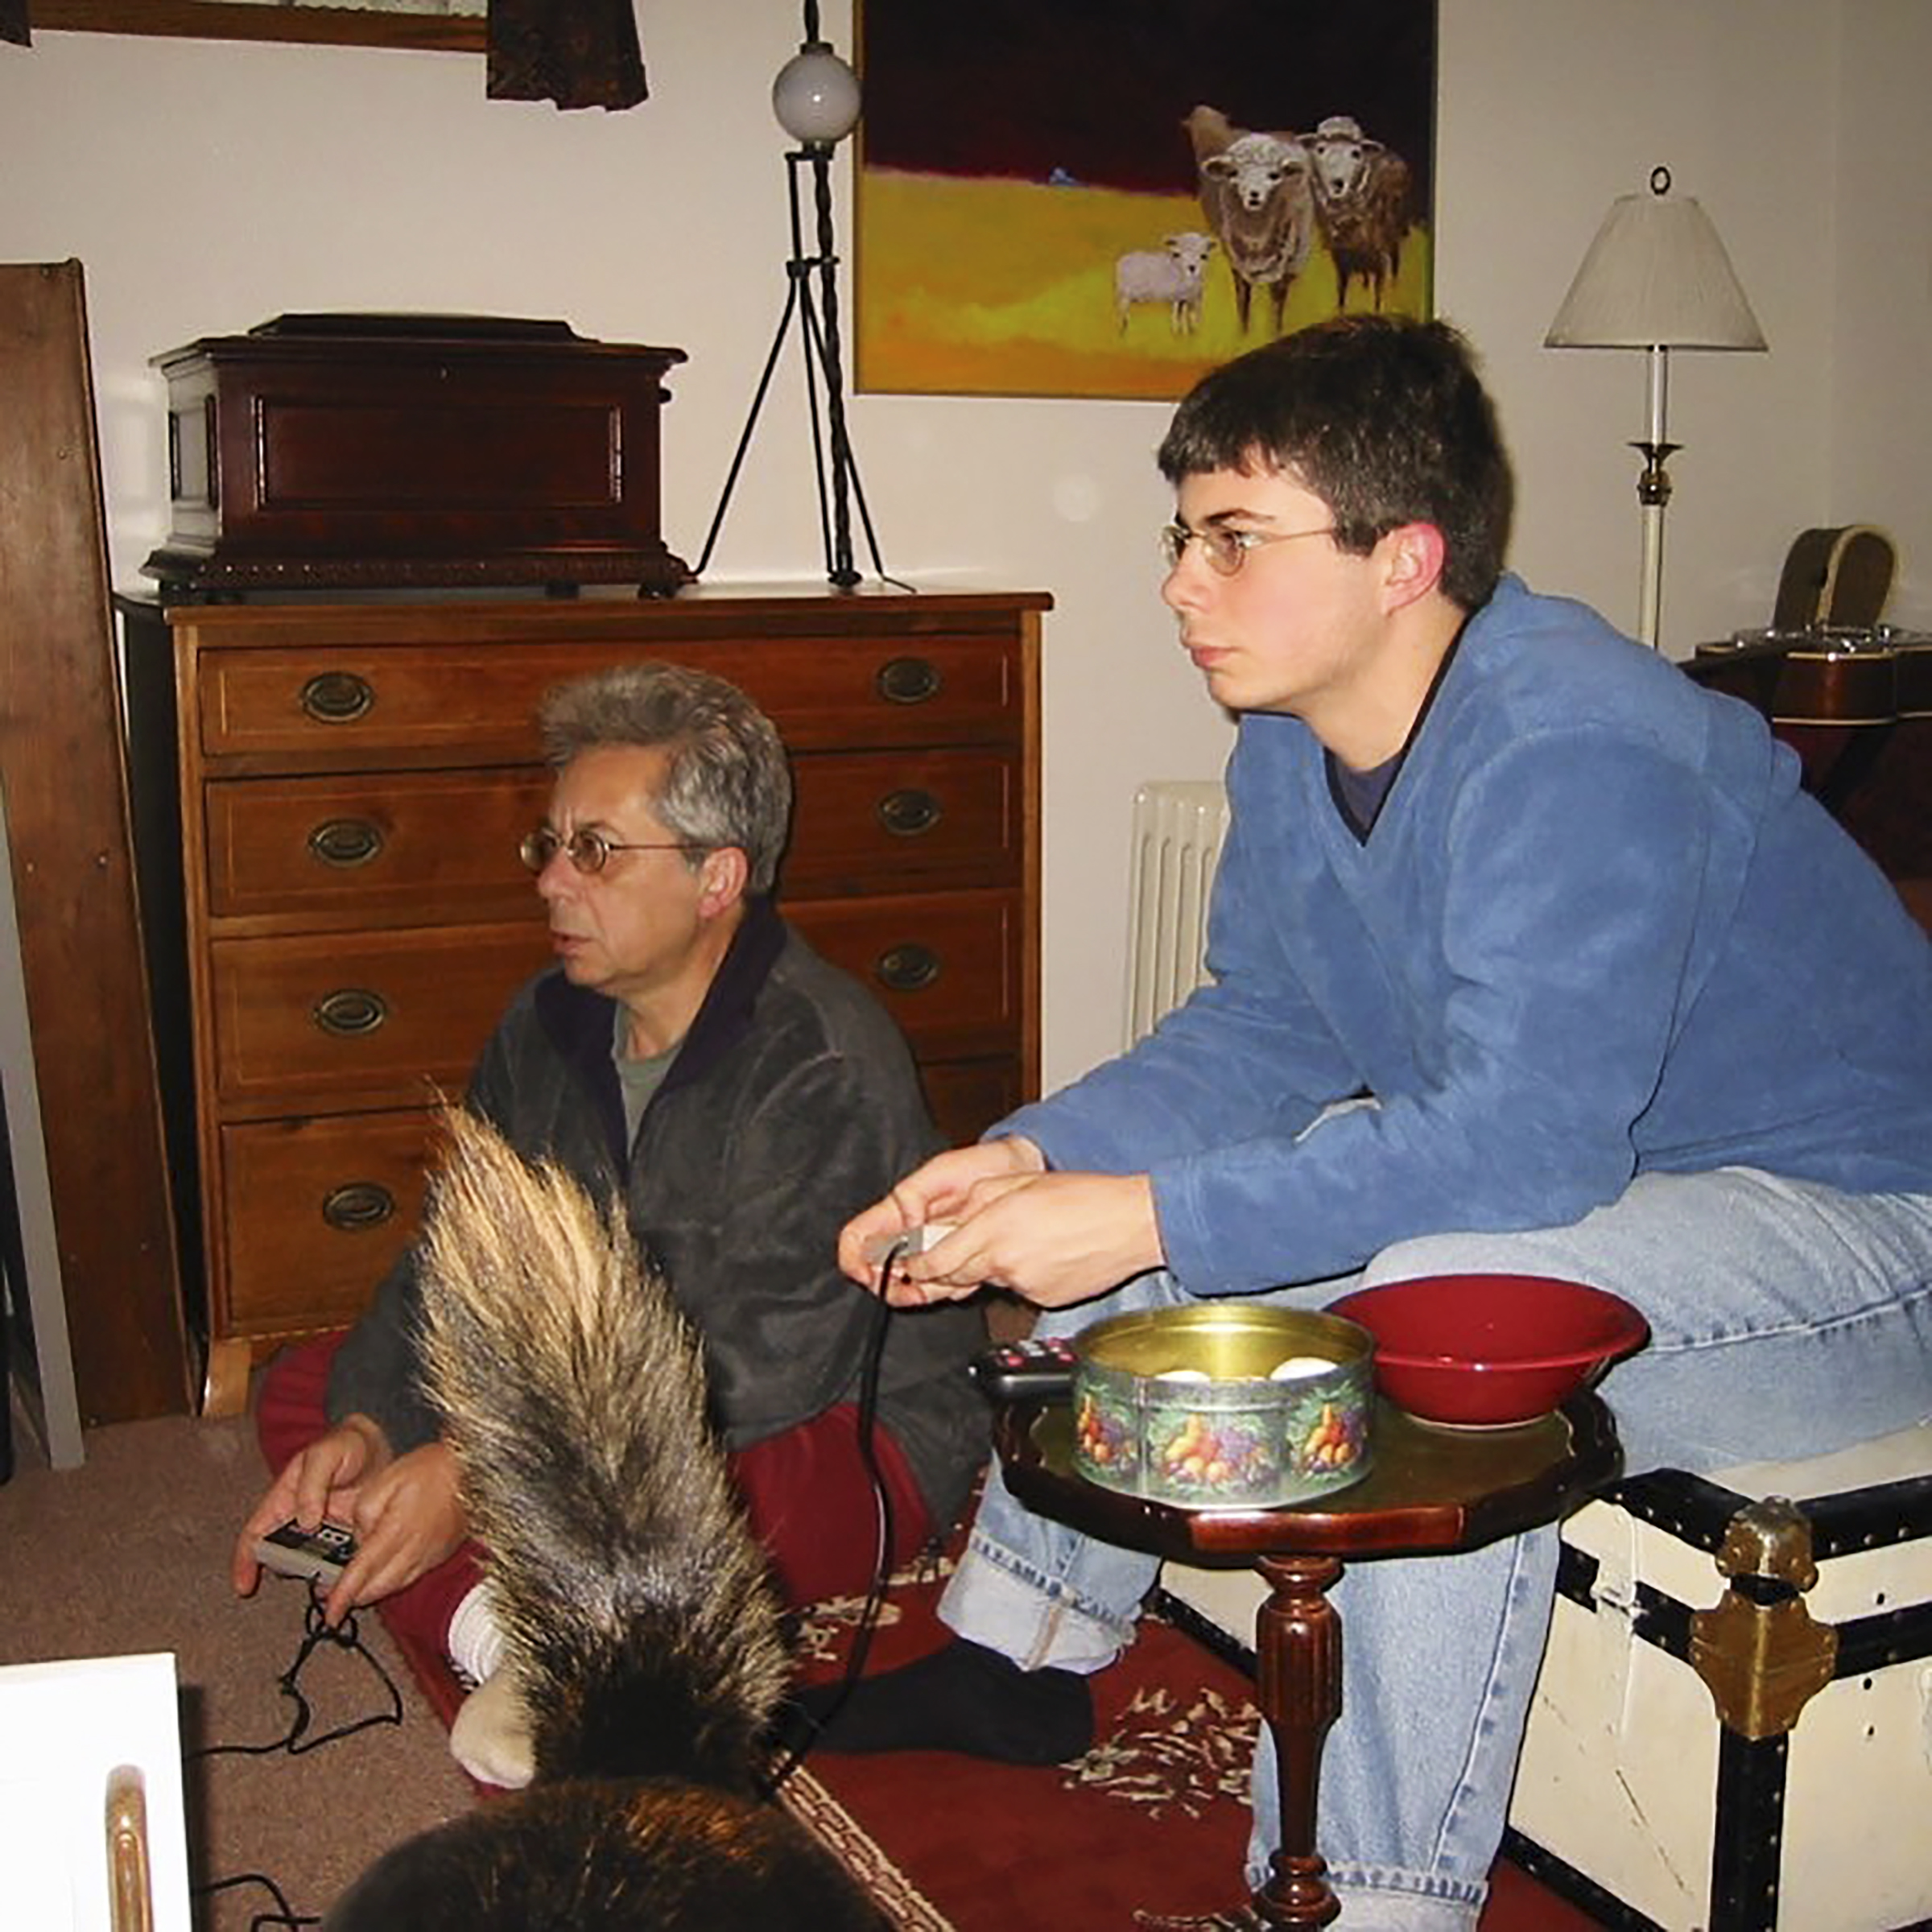 Buttigieg playing Nintendo with his late father Joseph Buttigieg at home in South Bend, circa 2000.